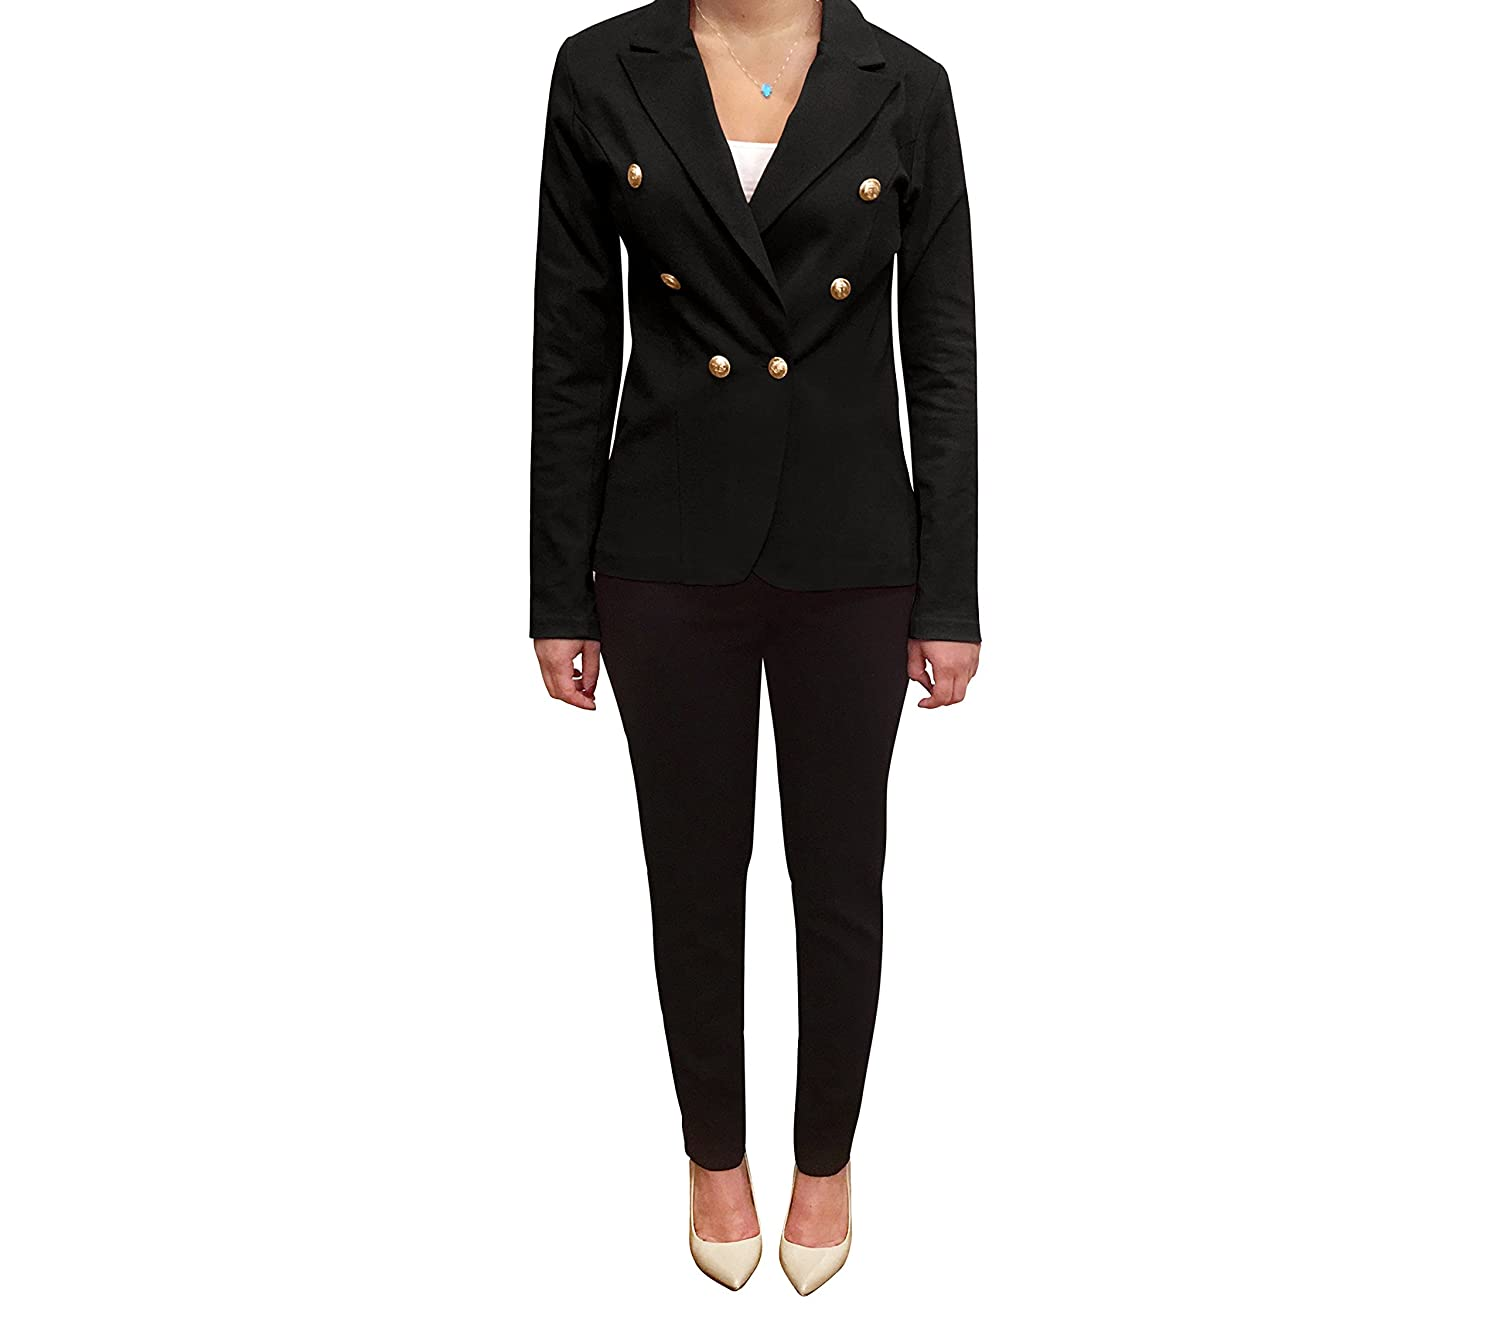 Black OrlyCollection Double Breasted Casual Work Office Blazers for Women Jacket with gold Button on The Sleeves Made in USA